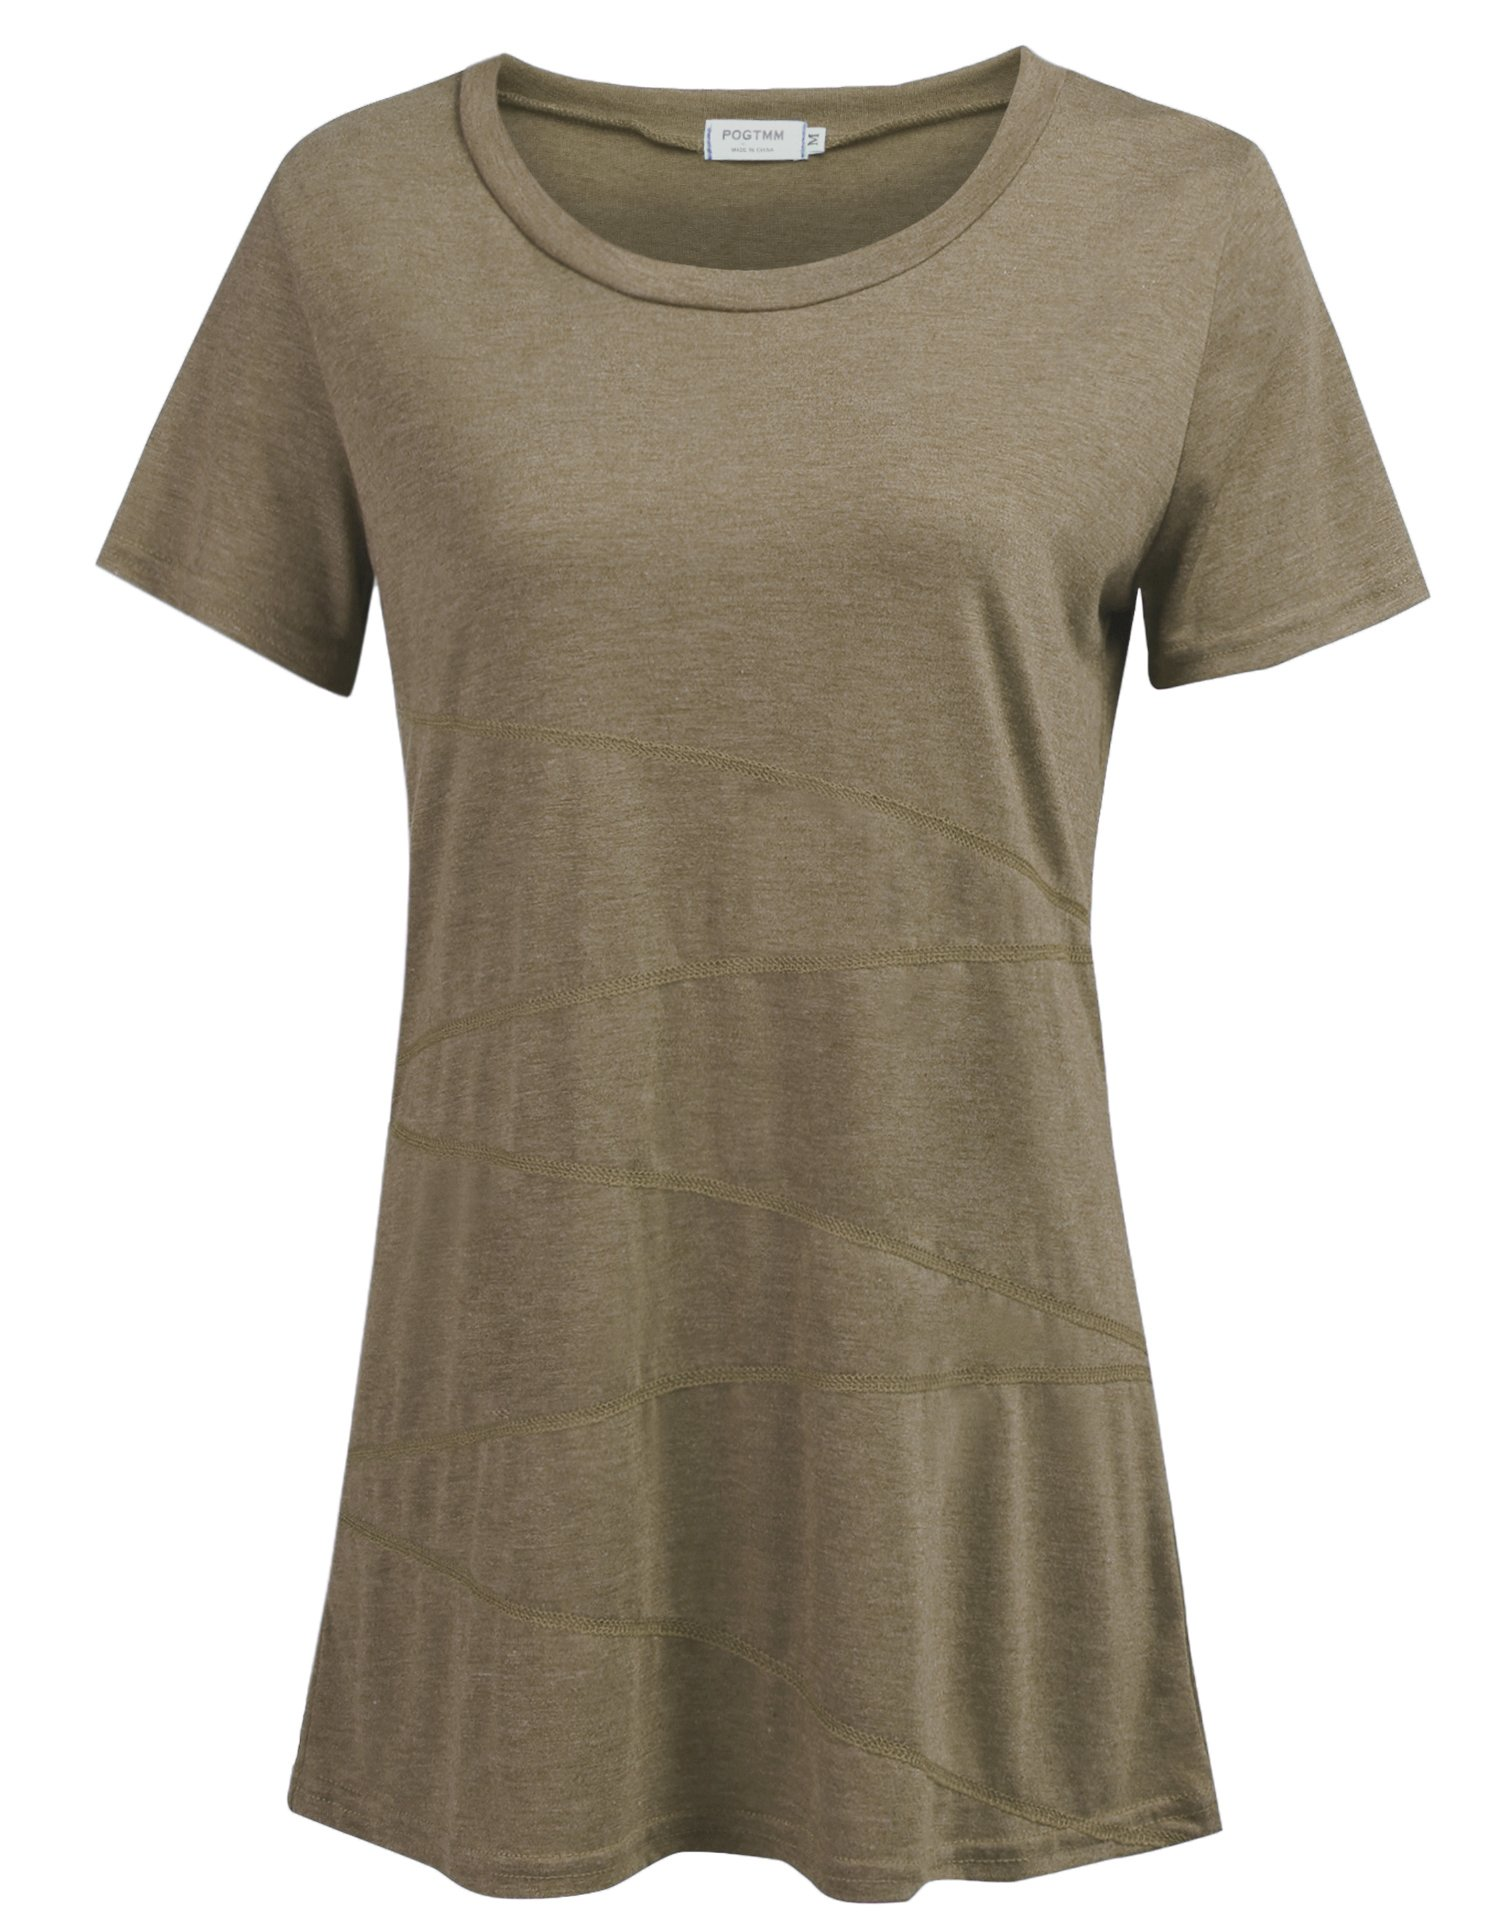 POGTMM Women's Casual Loose Short Sleeve Shirts Yoga Tops Activewear Running Workout T-Shirt Blouse (Brown-Coffee, US M(8-10))